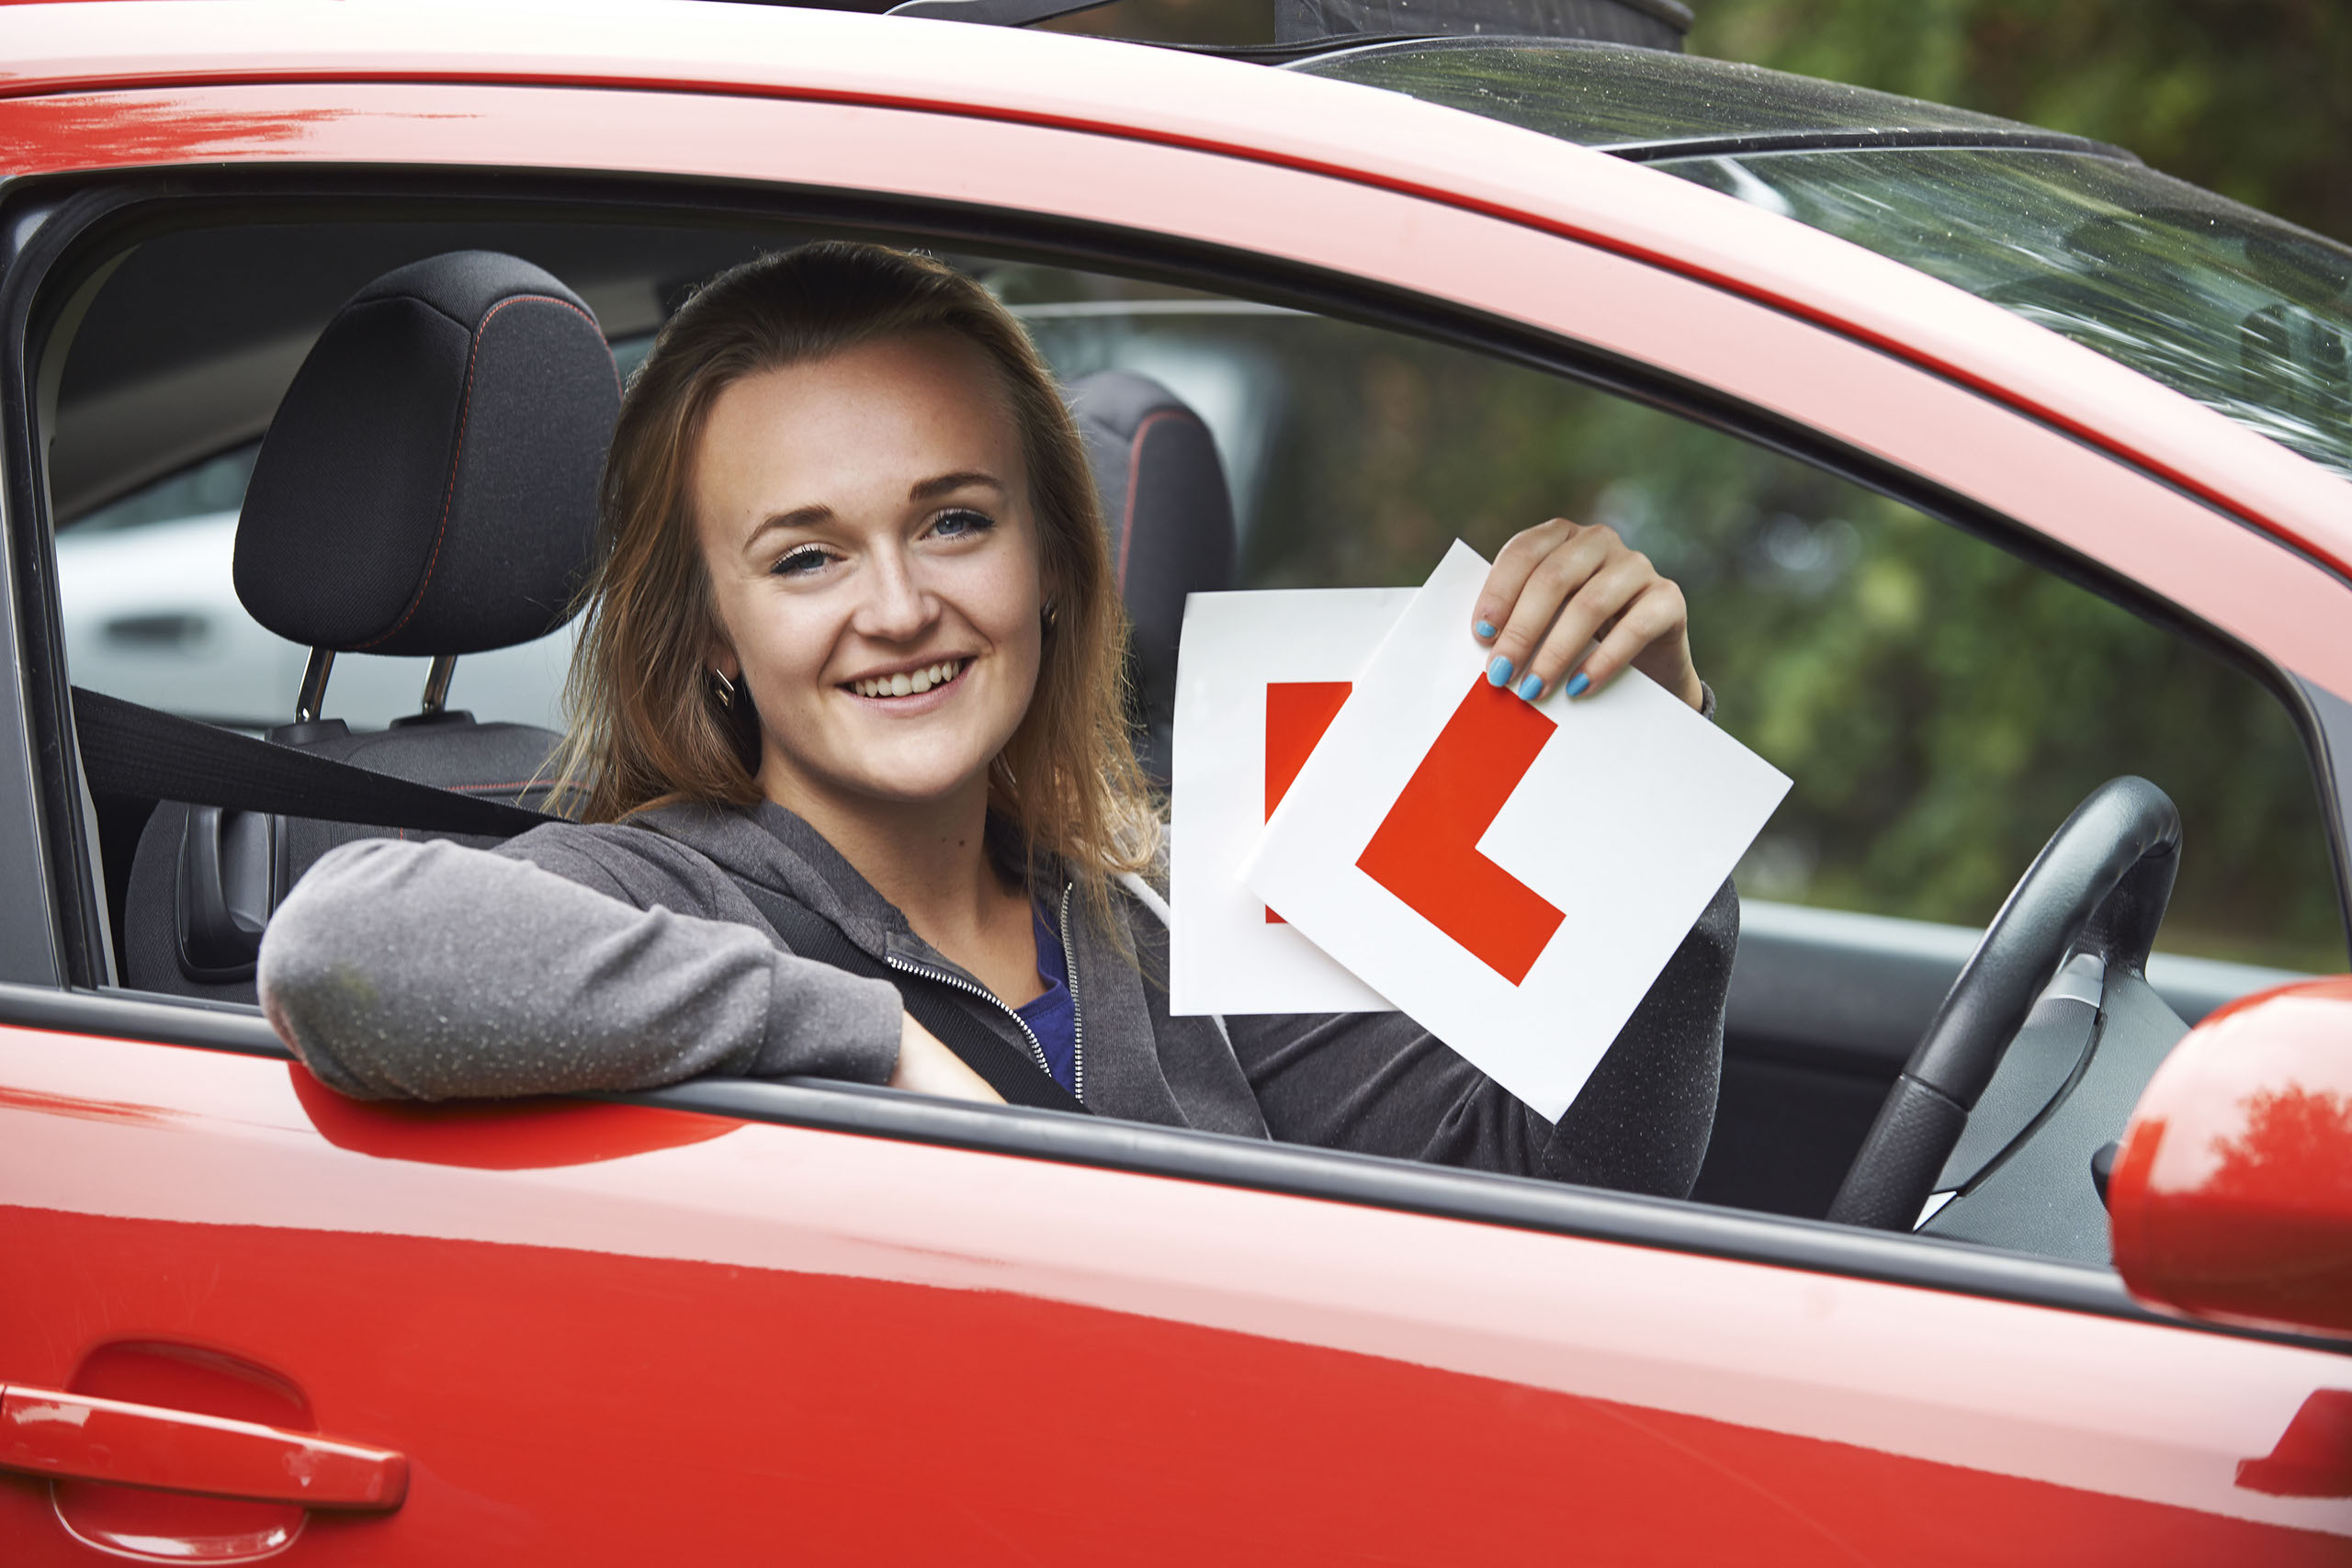 Teenage Girl Passing Driving Exam